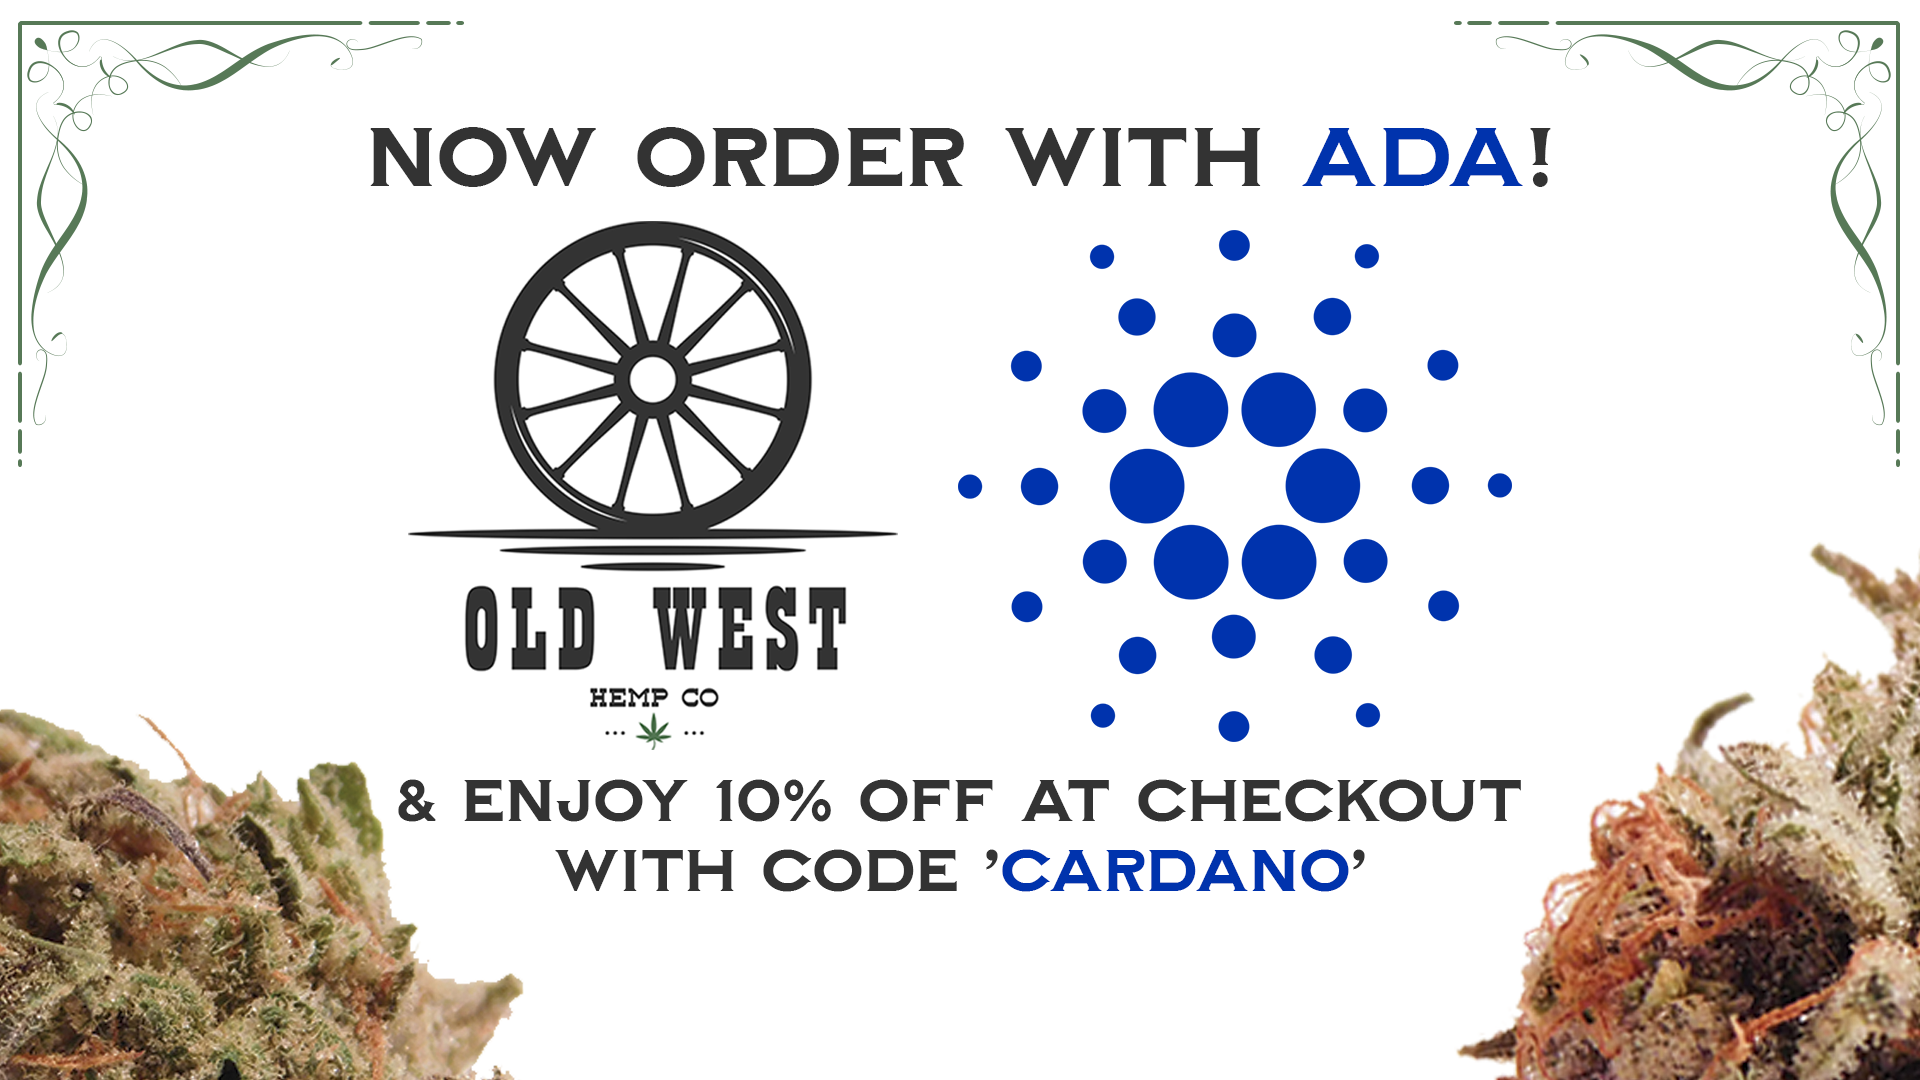 Order with Cardano